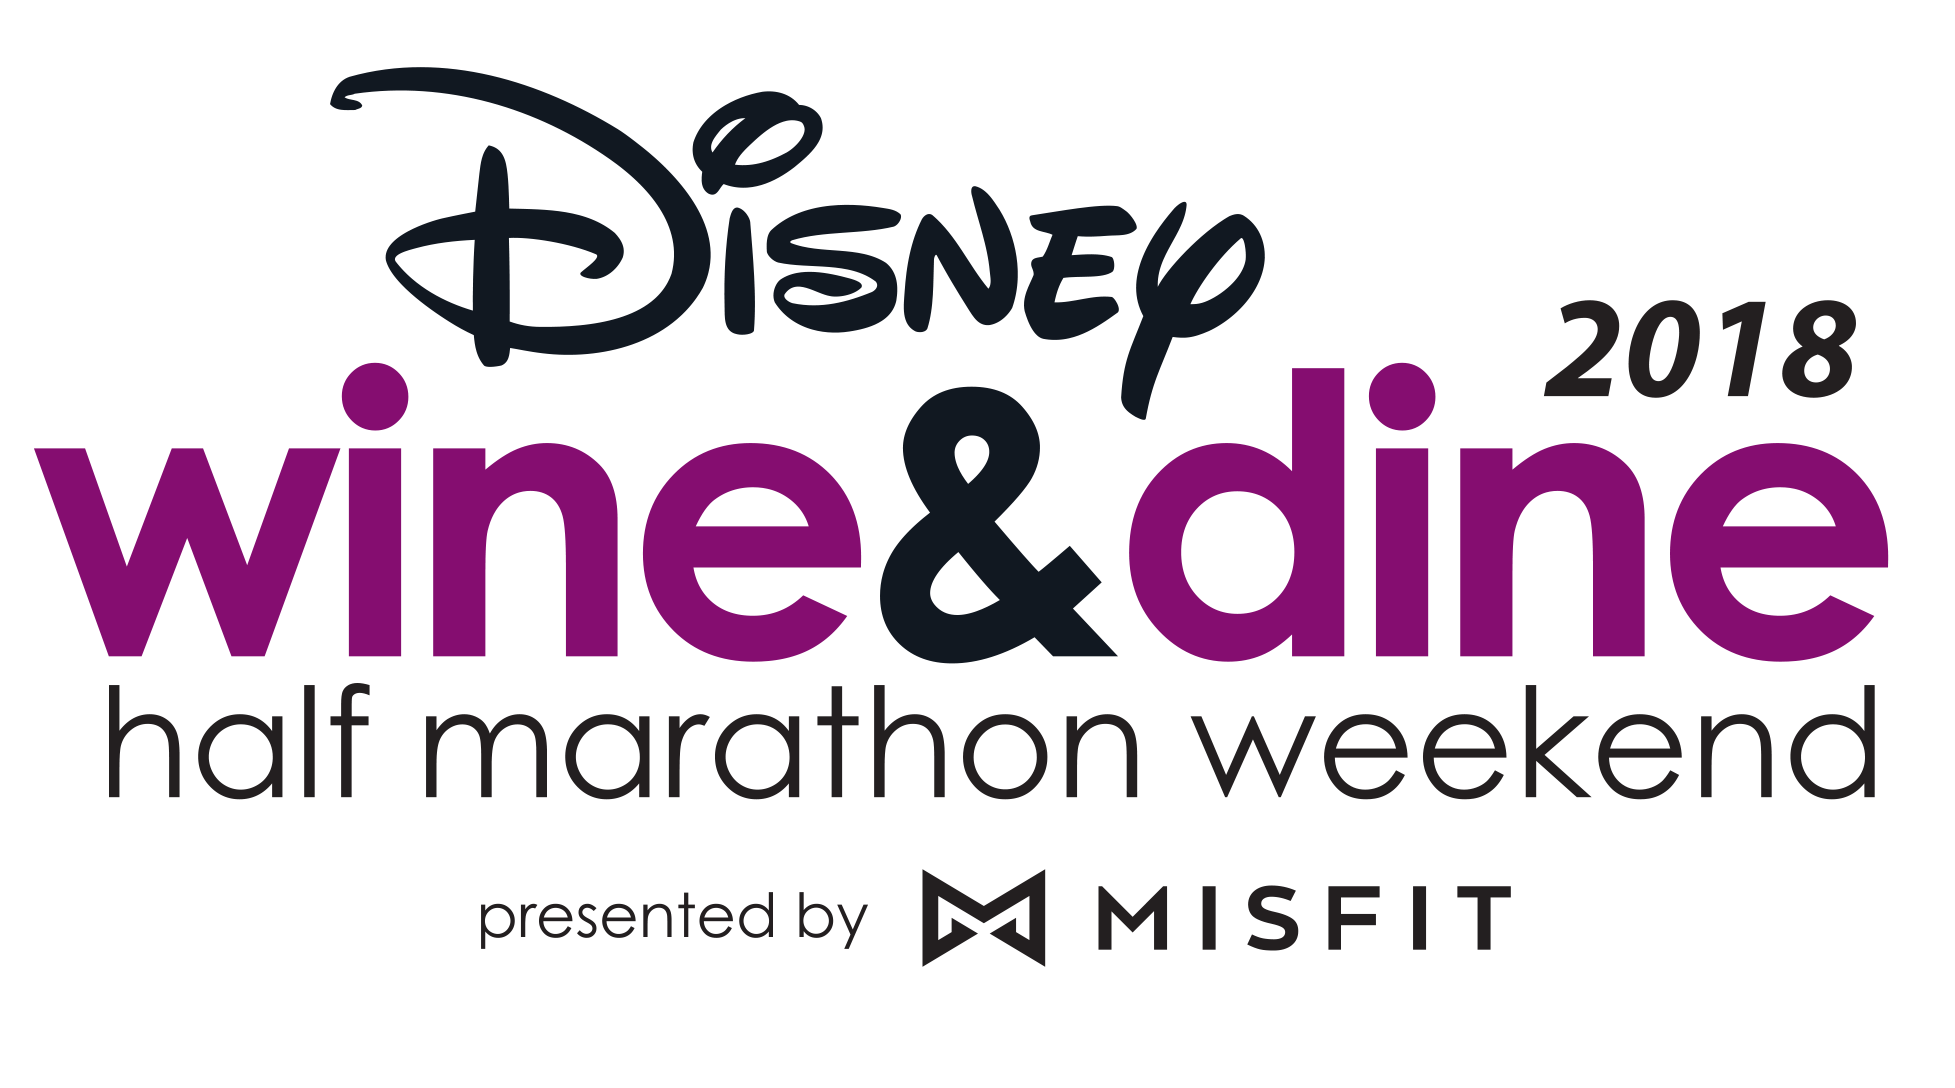 Disney Wine & Dine Half Marathon Weekend presented by MISFIT™